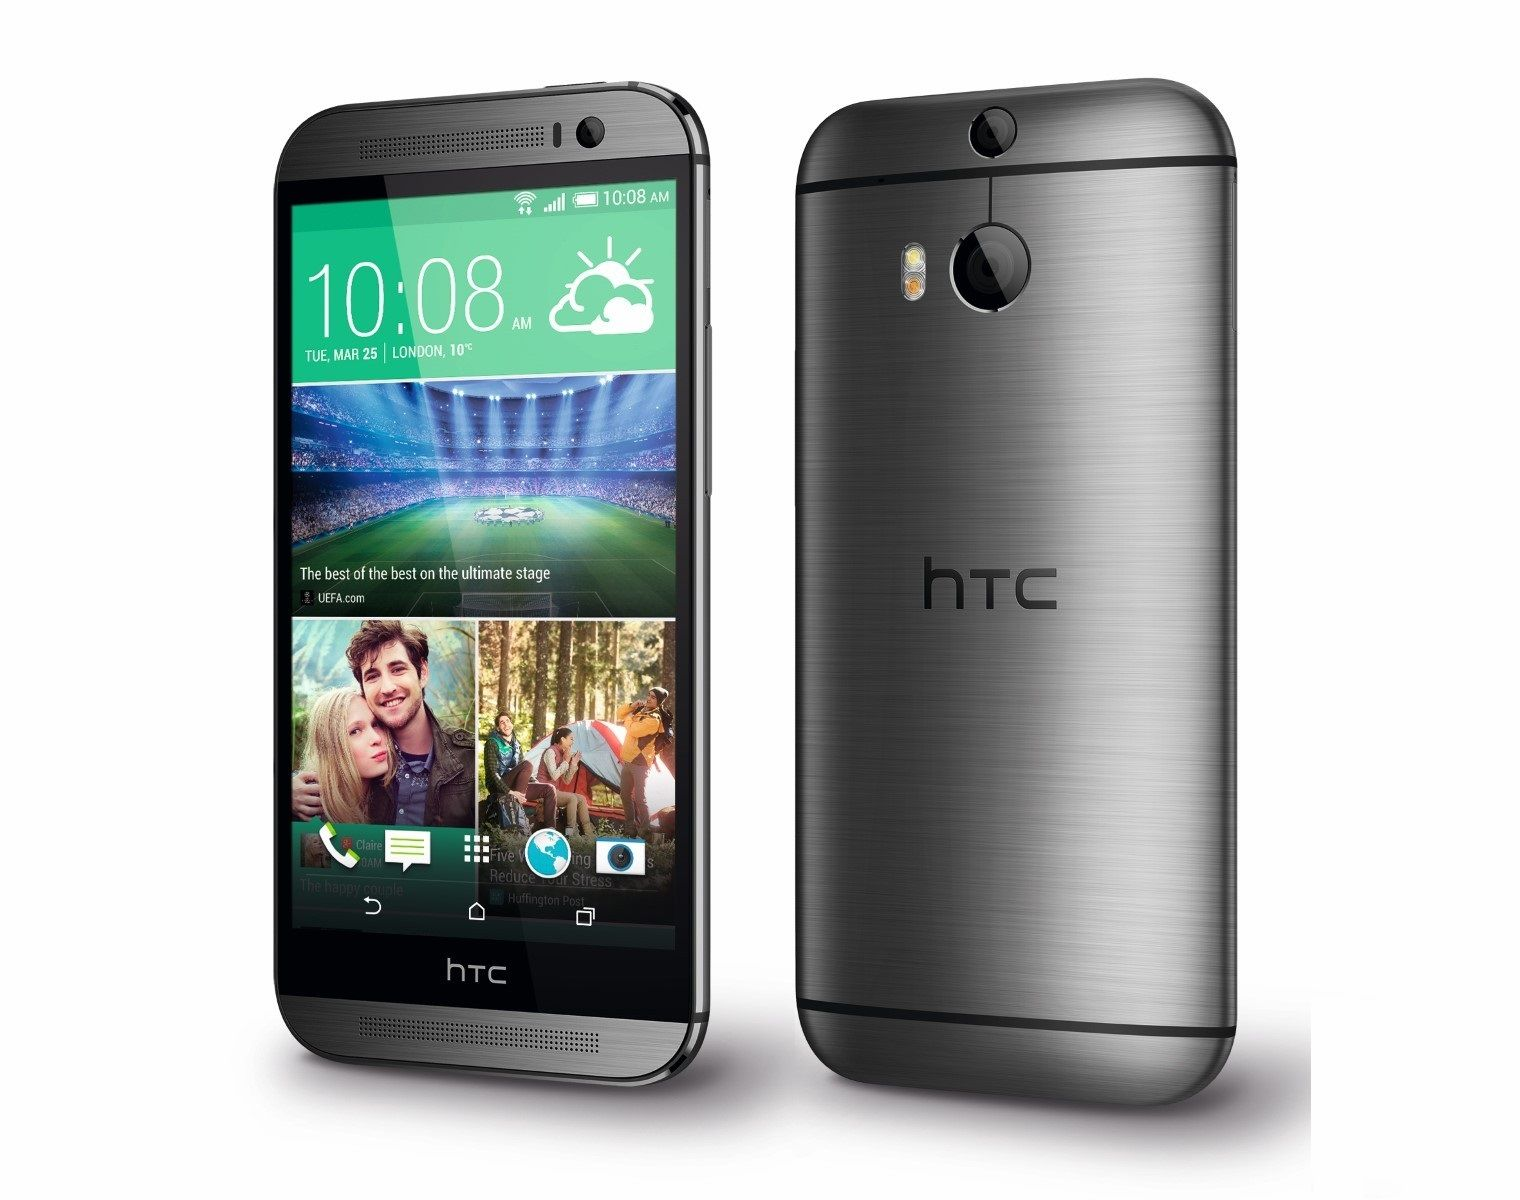 2a6e4d049e0bca34f42fc78c18002f36_All-new-HTC-One-M8-all-the-official-images-3.jpg